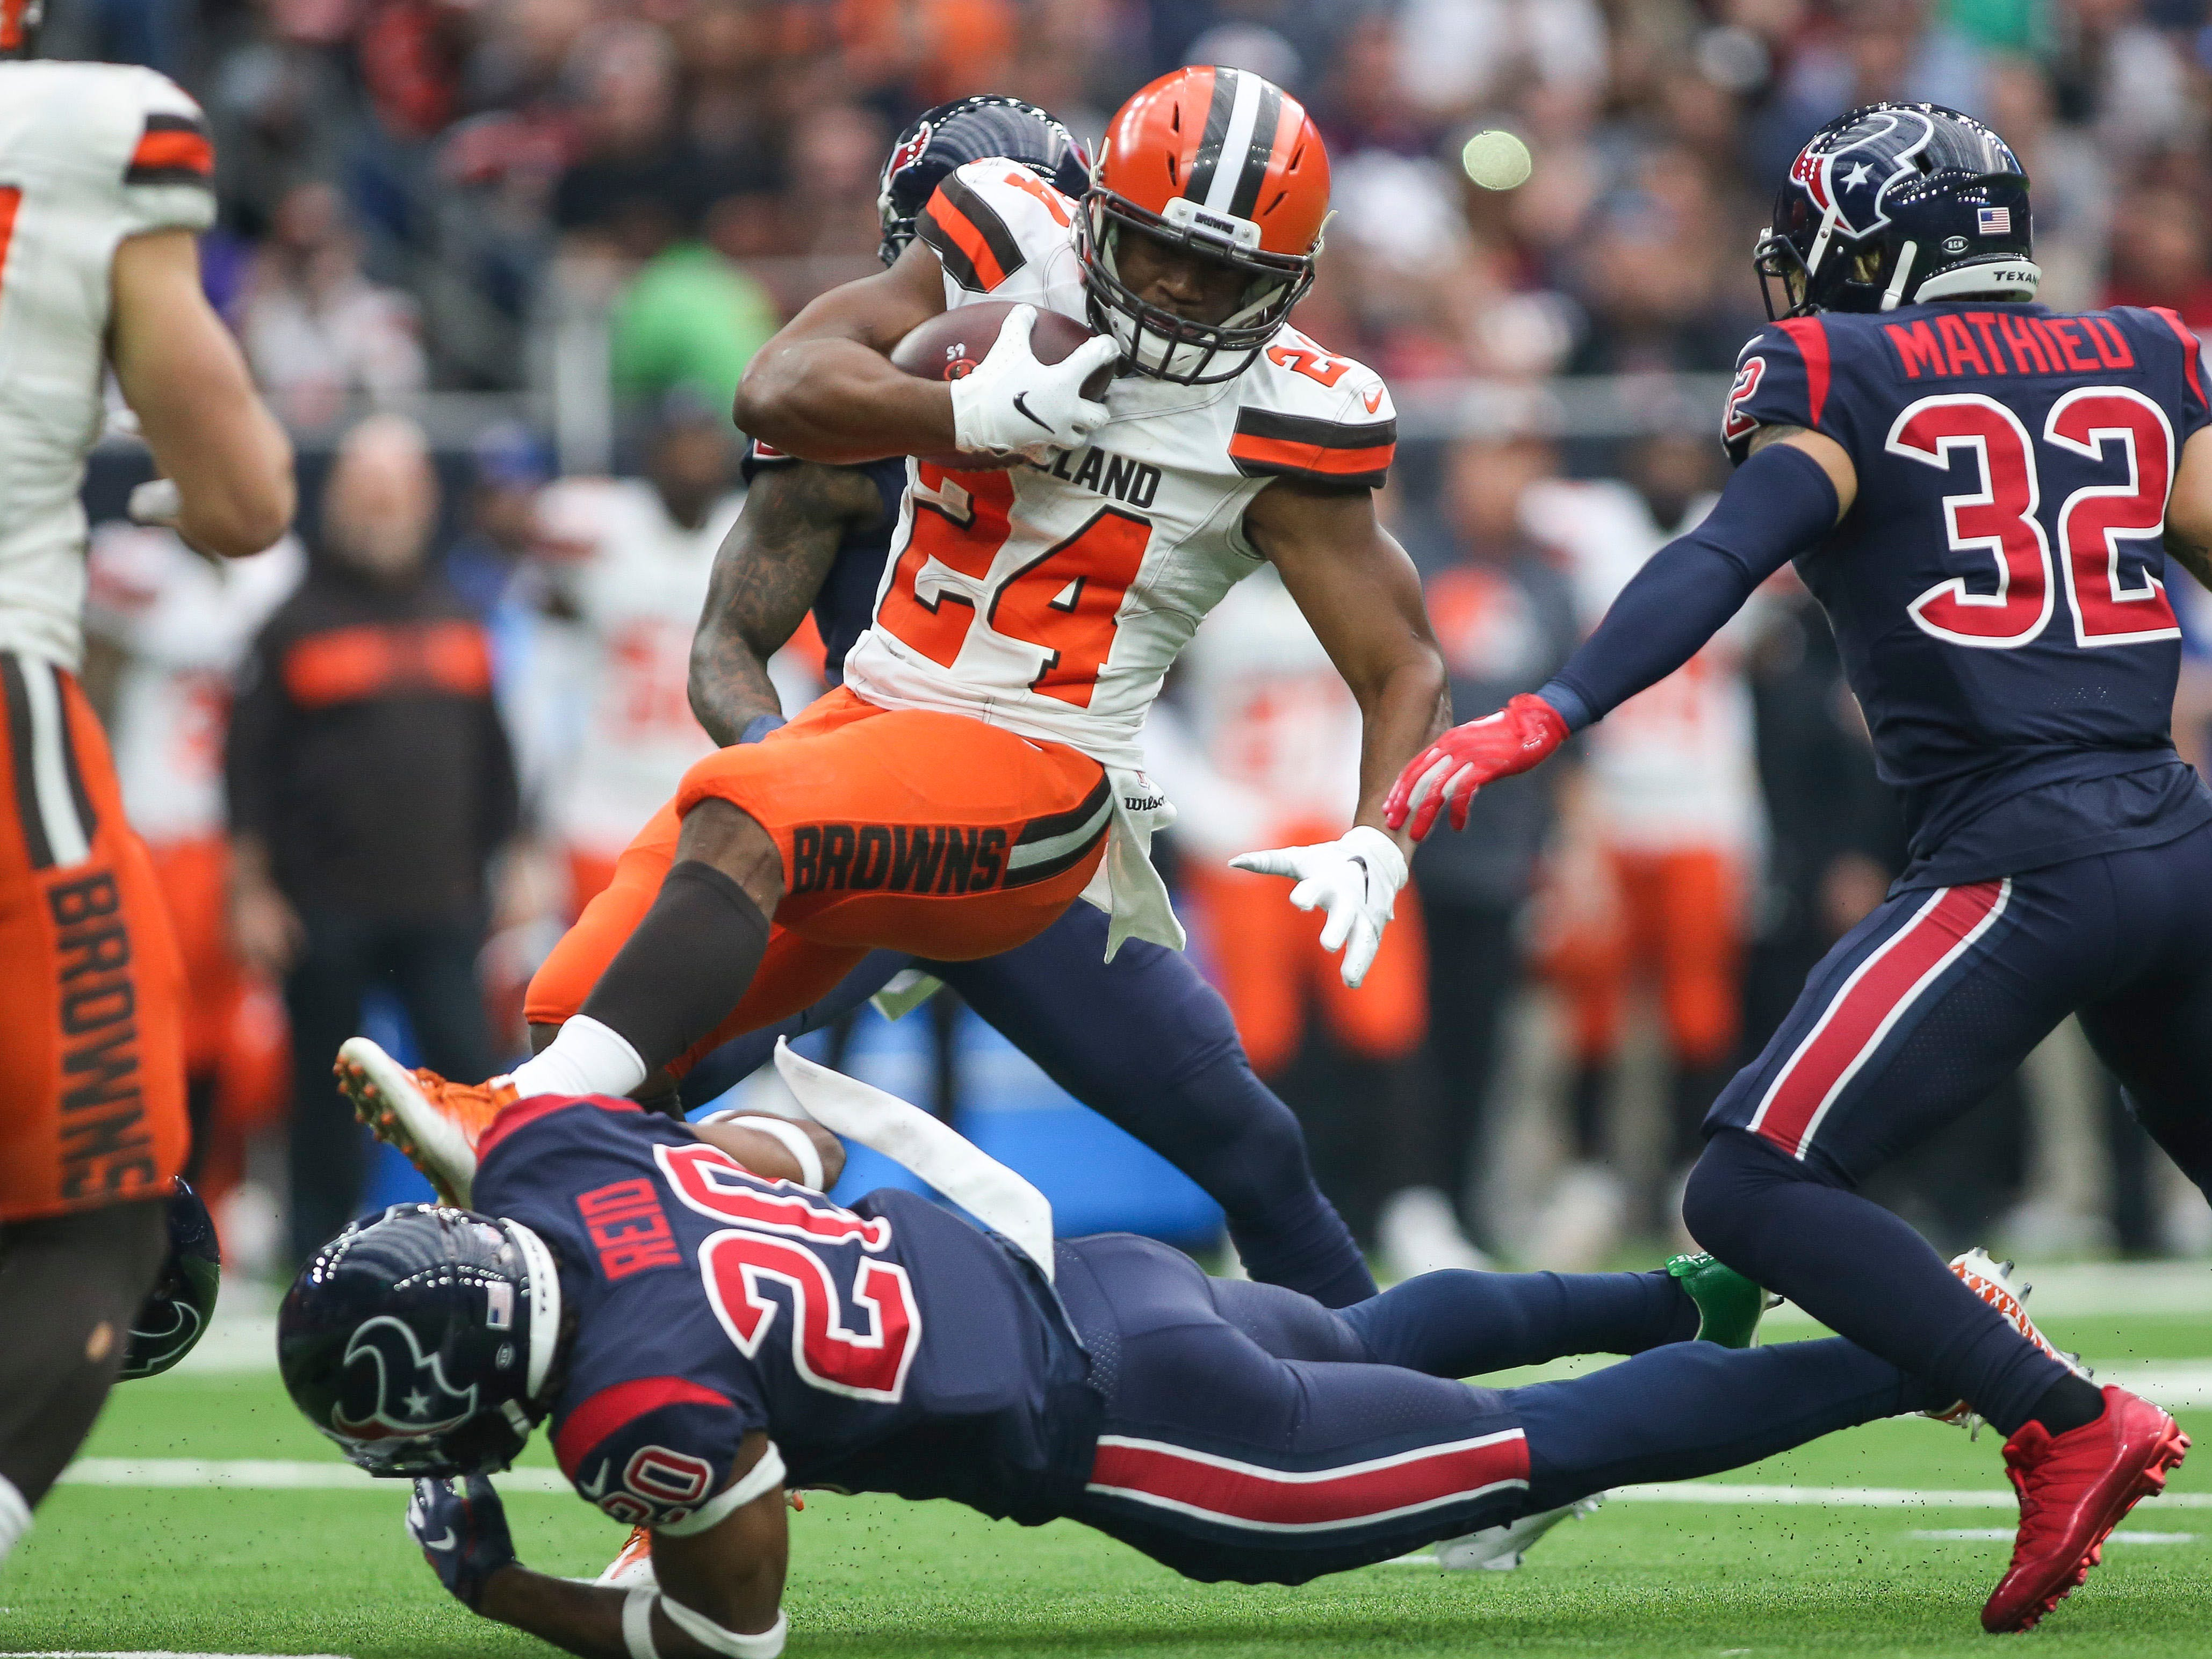 Cleveland Browns running back Nick Chubb (24) runs with the ball as Houston Texans strong safety Justin Reid (20) attempts to make a tackle during the first quarter at NRG Stadium.